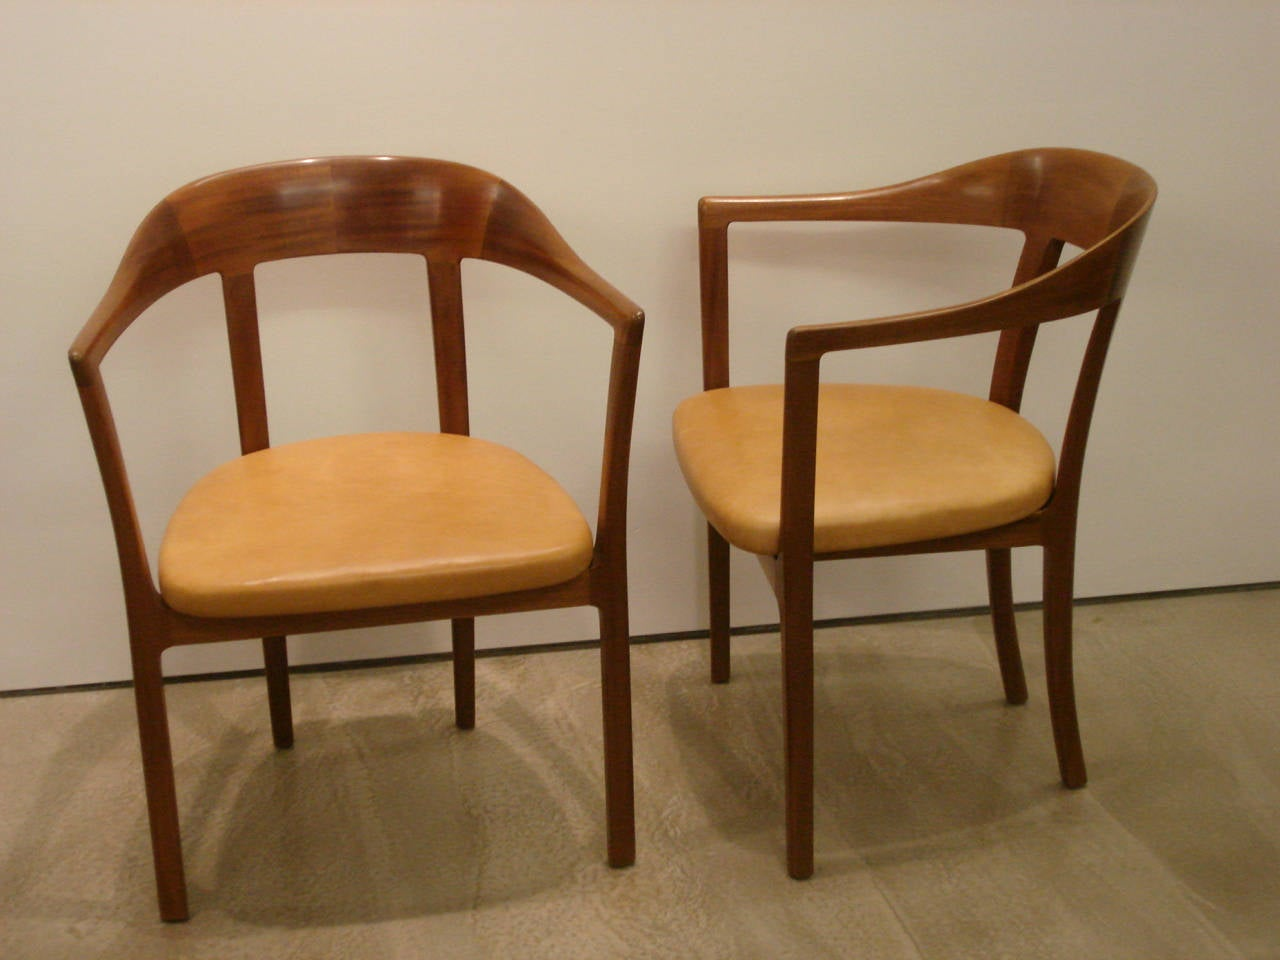 Danish Ole Wanscher, Set of Four 1958 Armchairs in Mahogany and Original Leather Seats For Sale